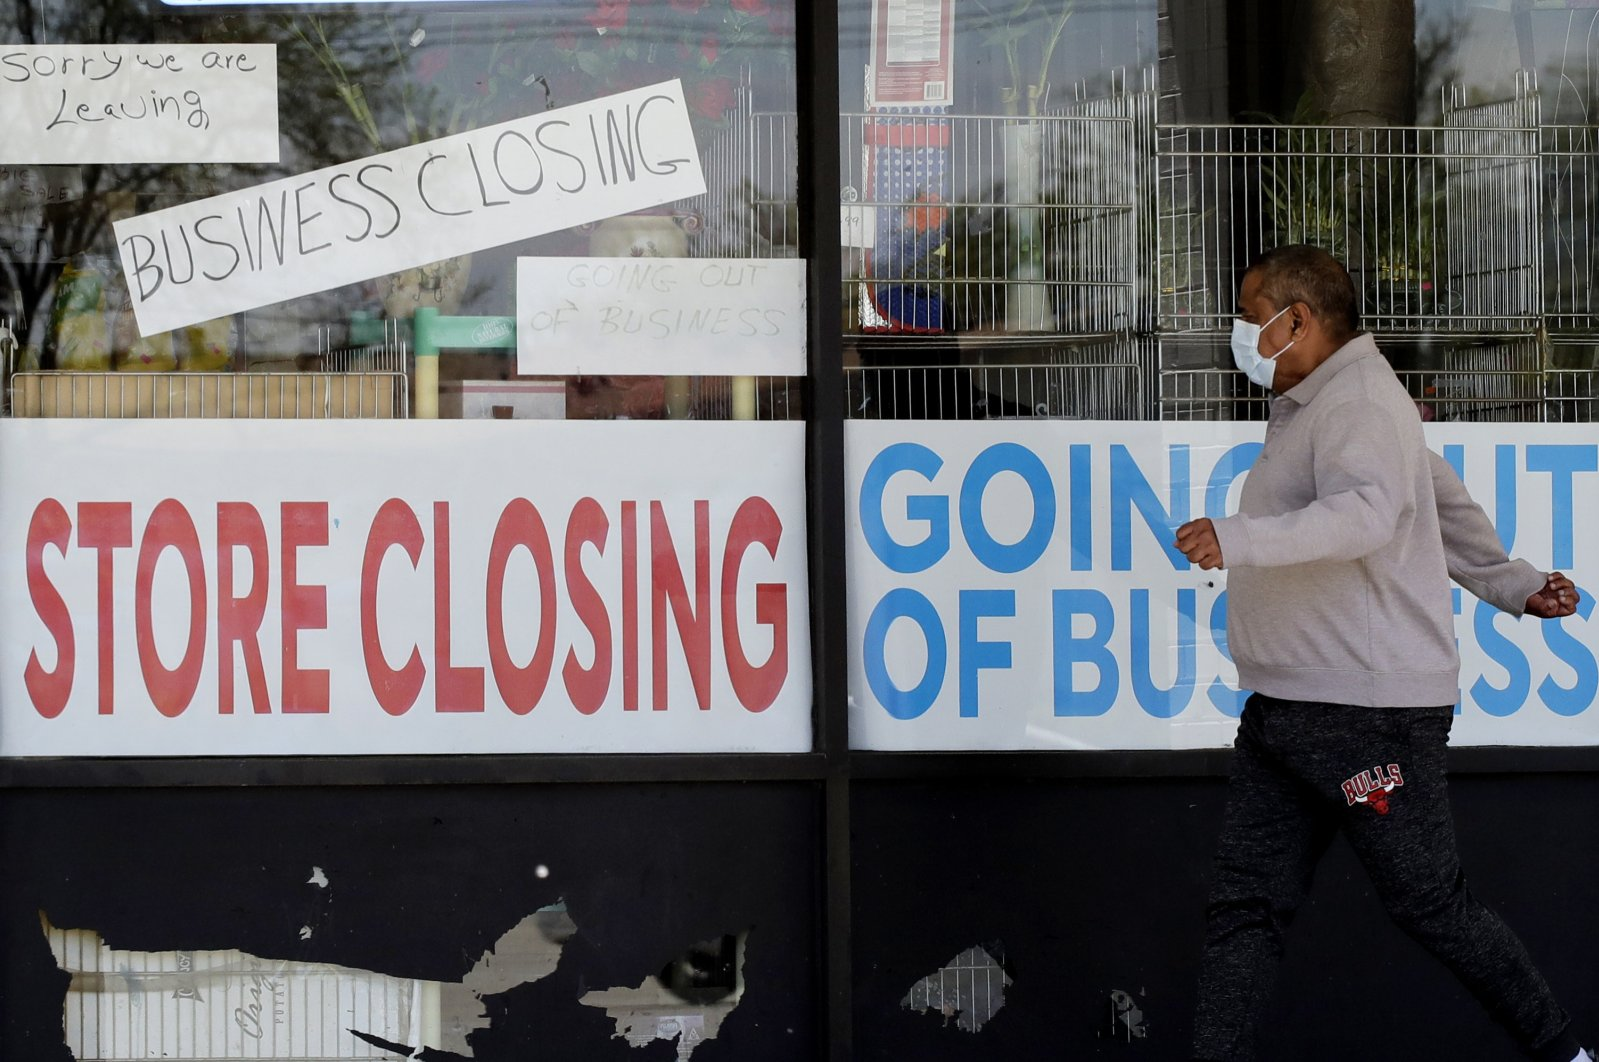 A man walks past signs of a store going out of business during the coronavirus outbreak in Niles, Illinois, U.S., May 21, 2020. (AP Photo)